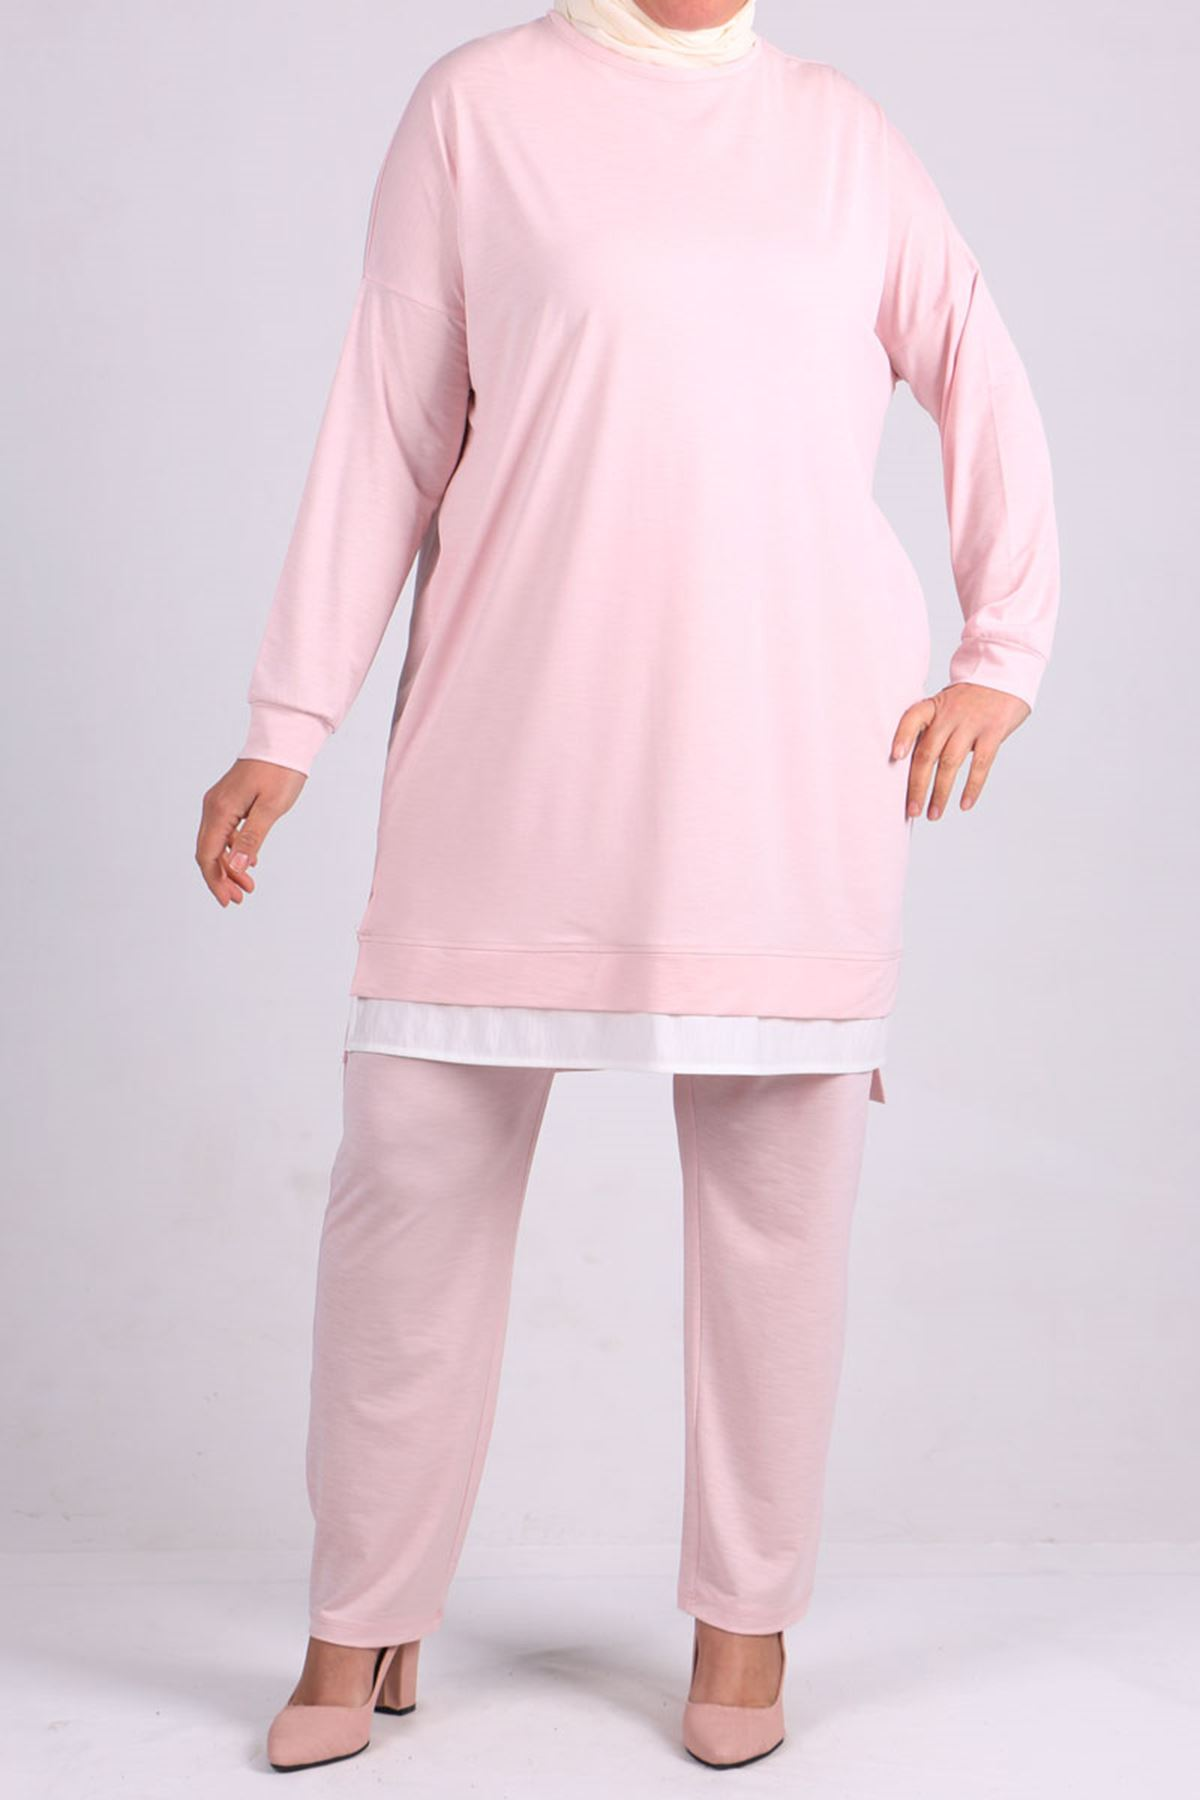 7677 Plus Size Garnished Two Piece Set with Tunic and Pants- Powder